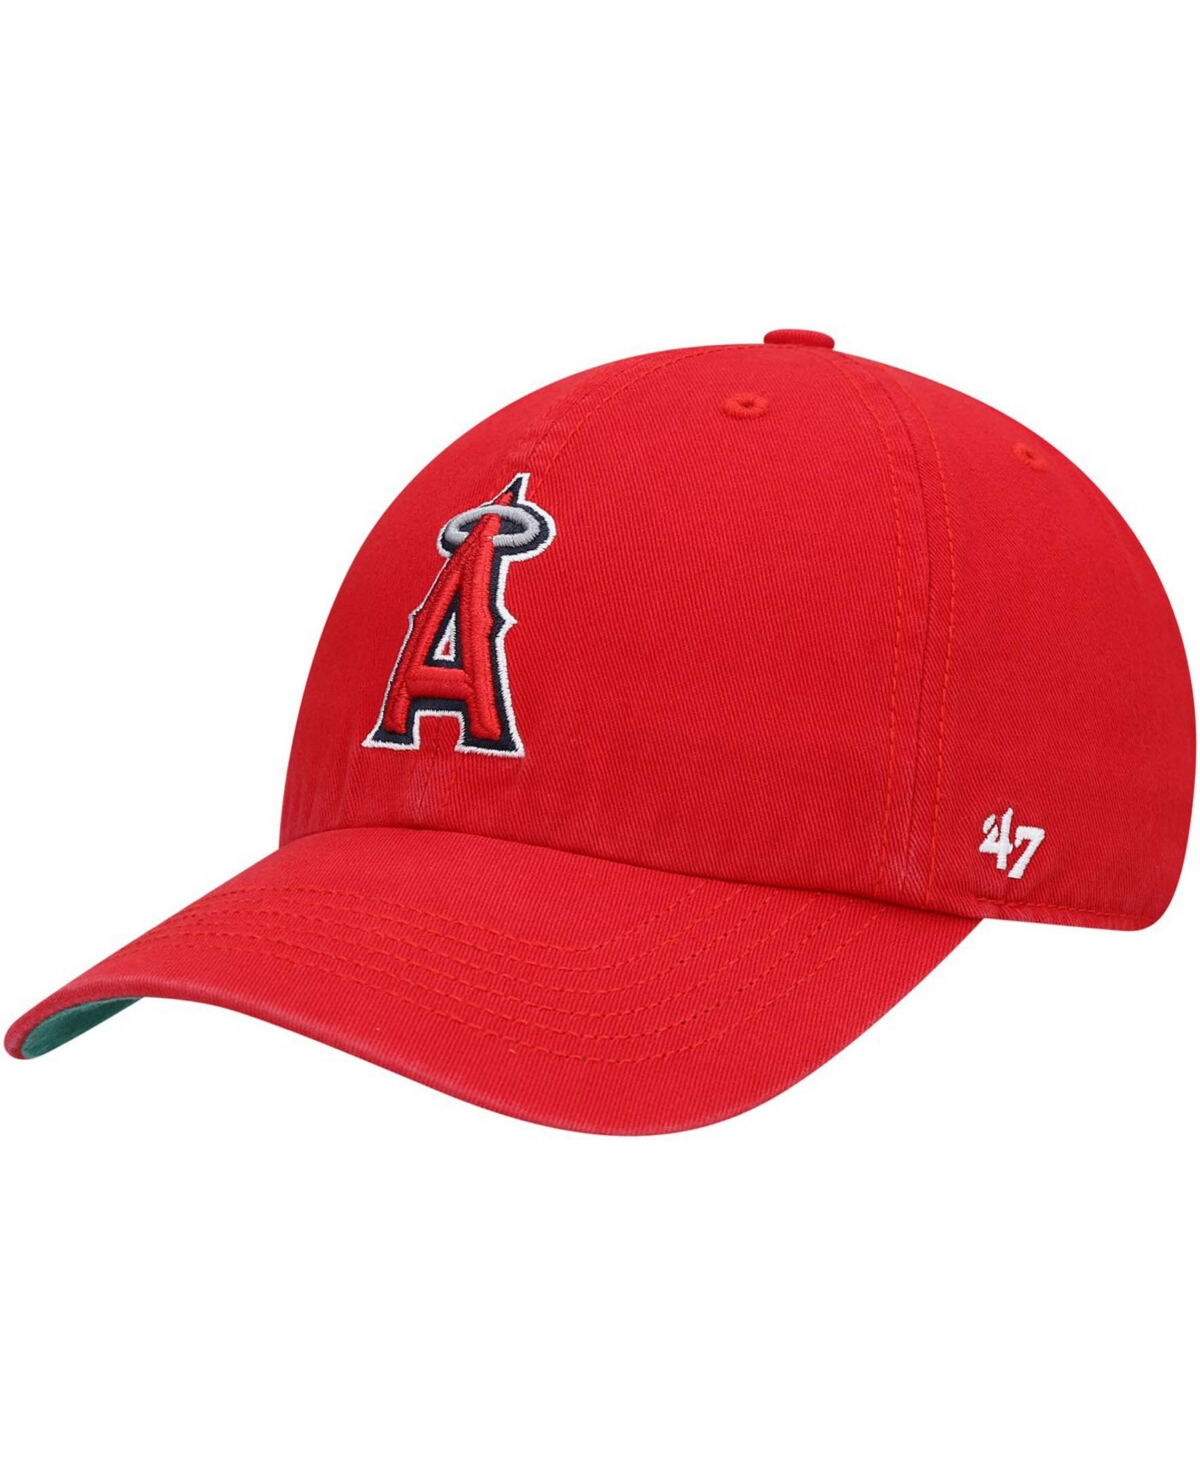 47 Brand Los Angeles Angels Team Franchise Fitted Cap